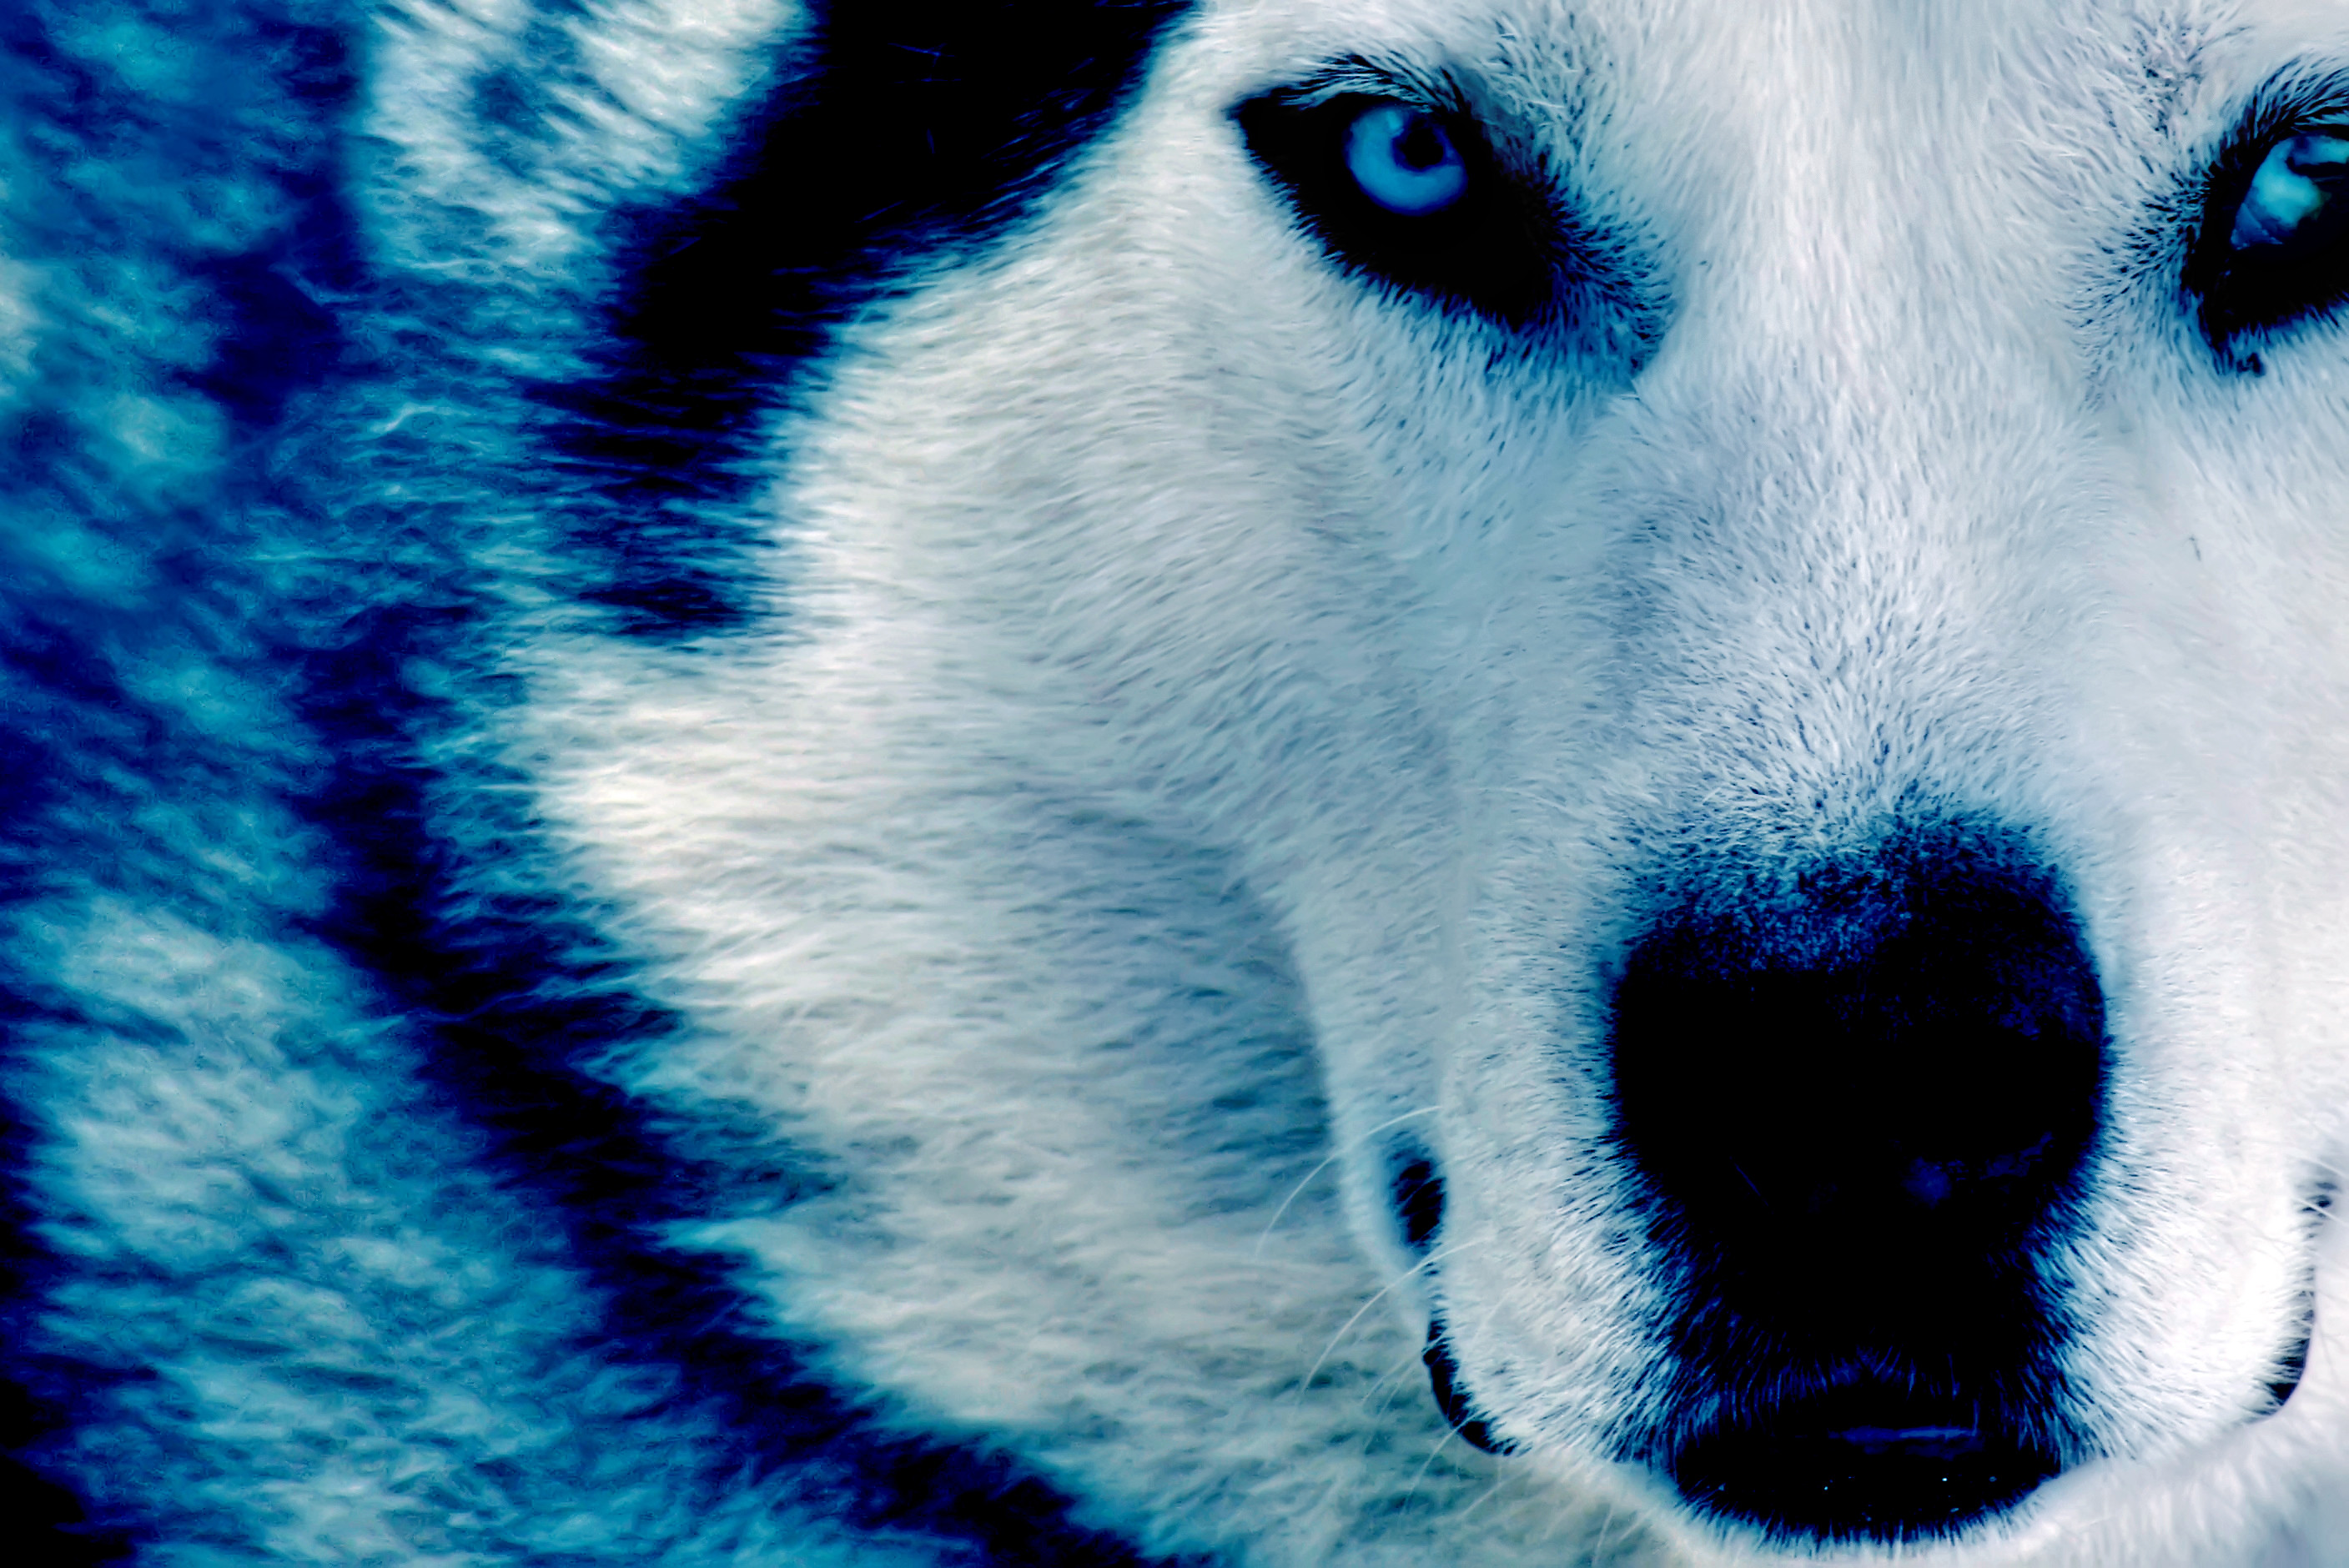 2816x1880 Winter Wolf HD dekstop wallpapers - Winter Wolf